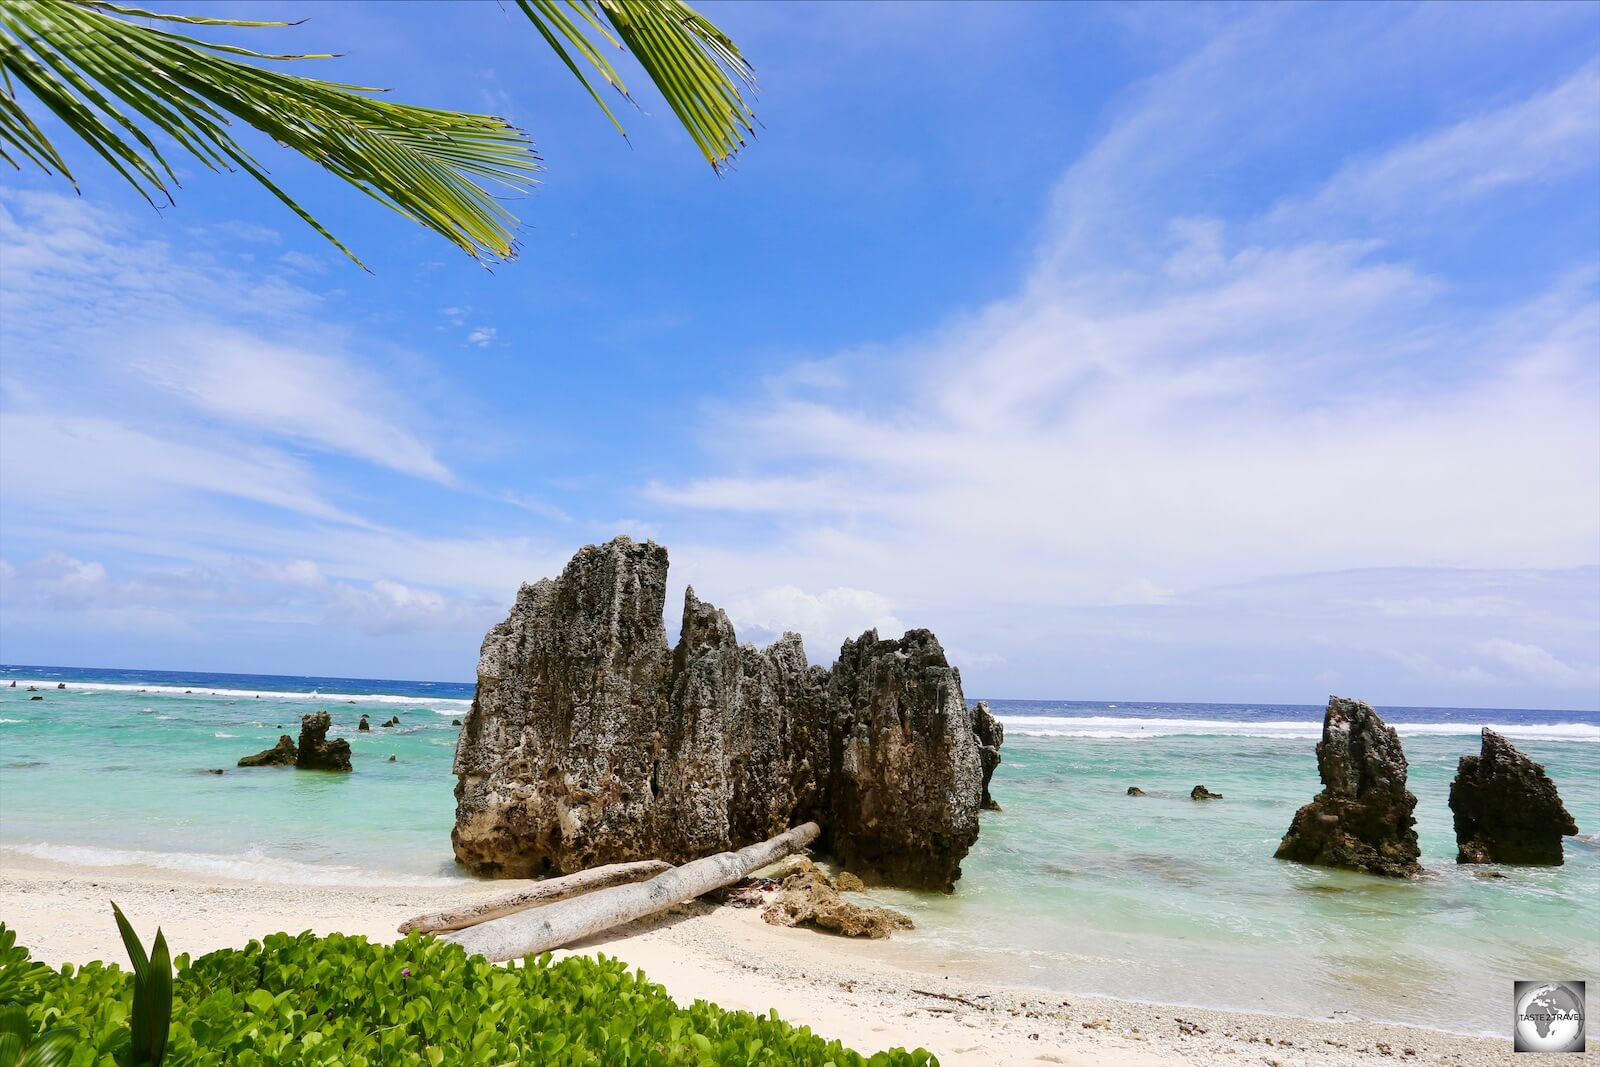 A view of the limestone pinnacles at Anibare Bay.